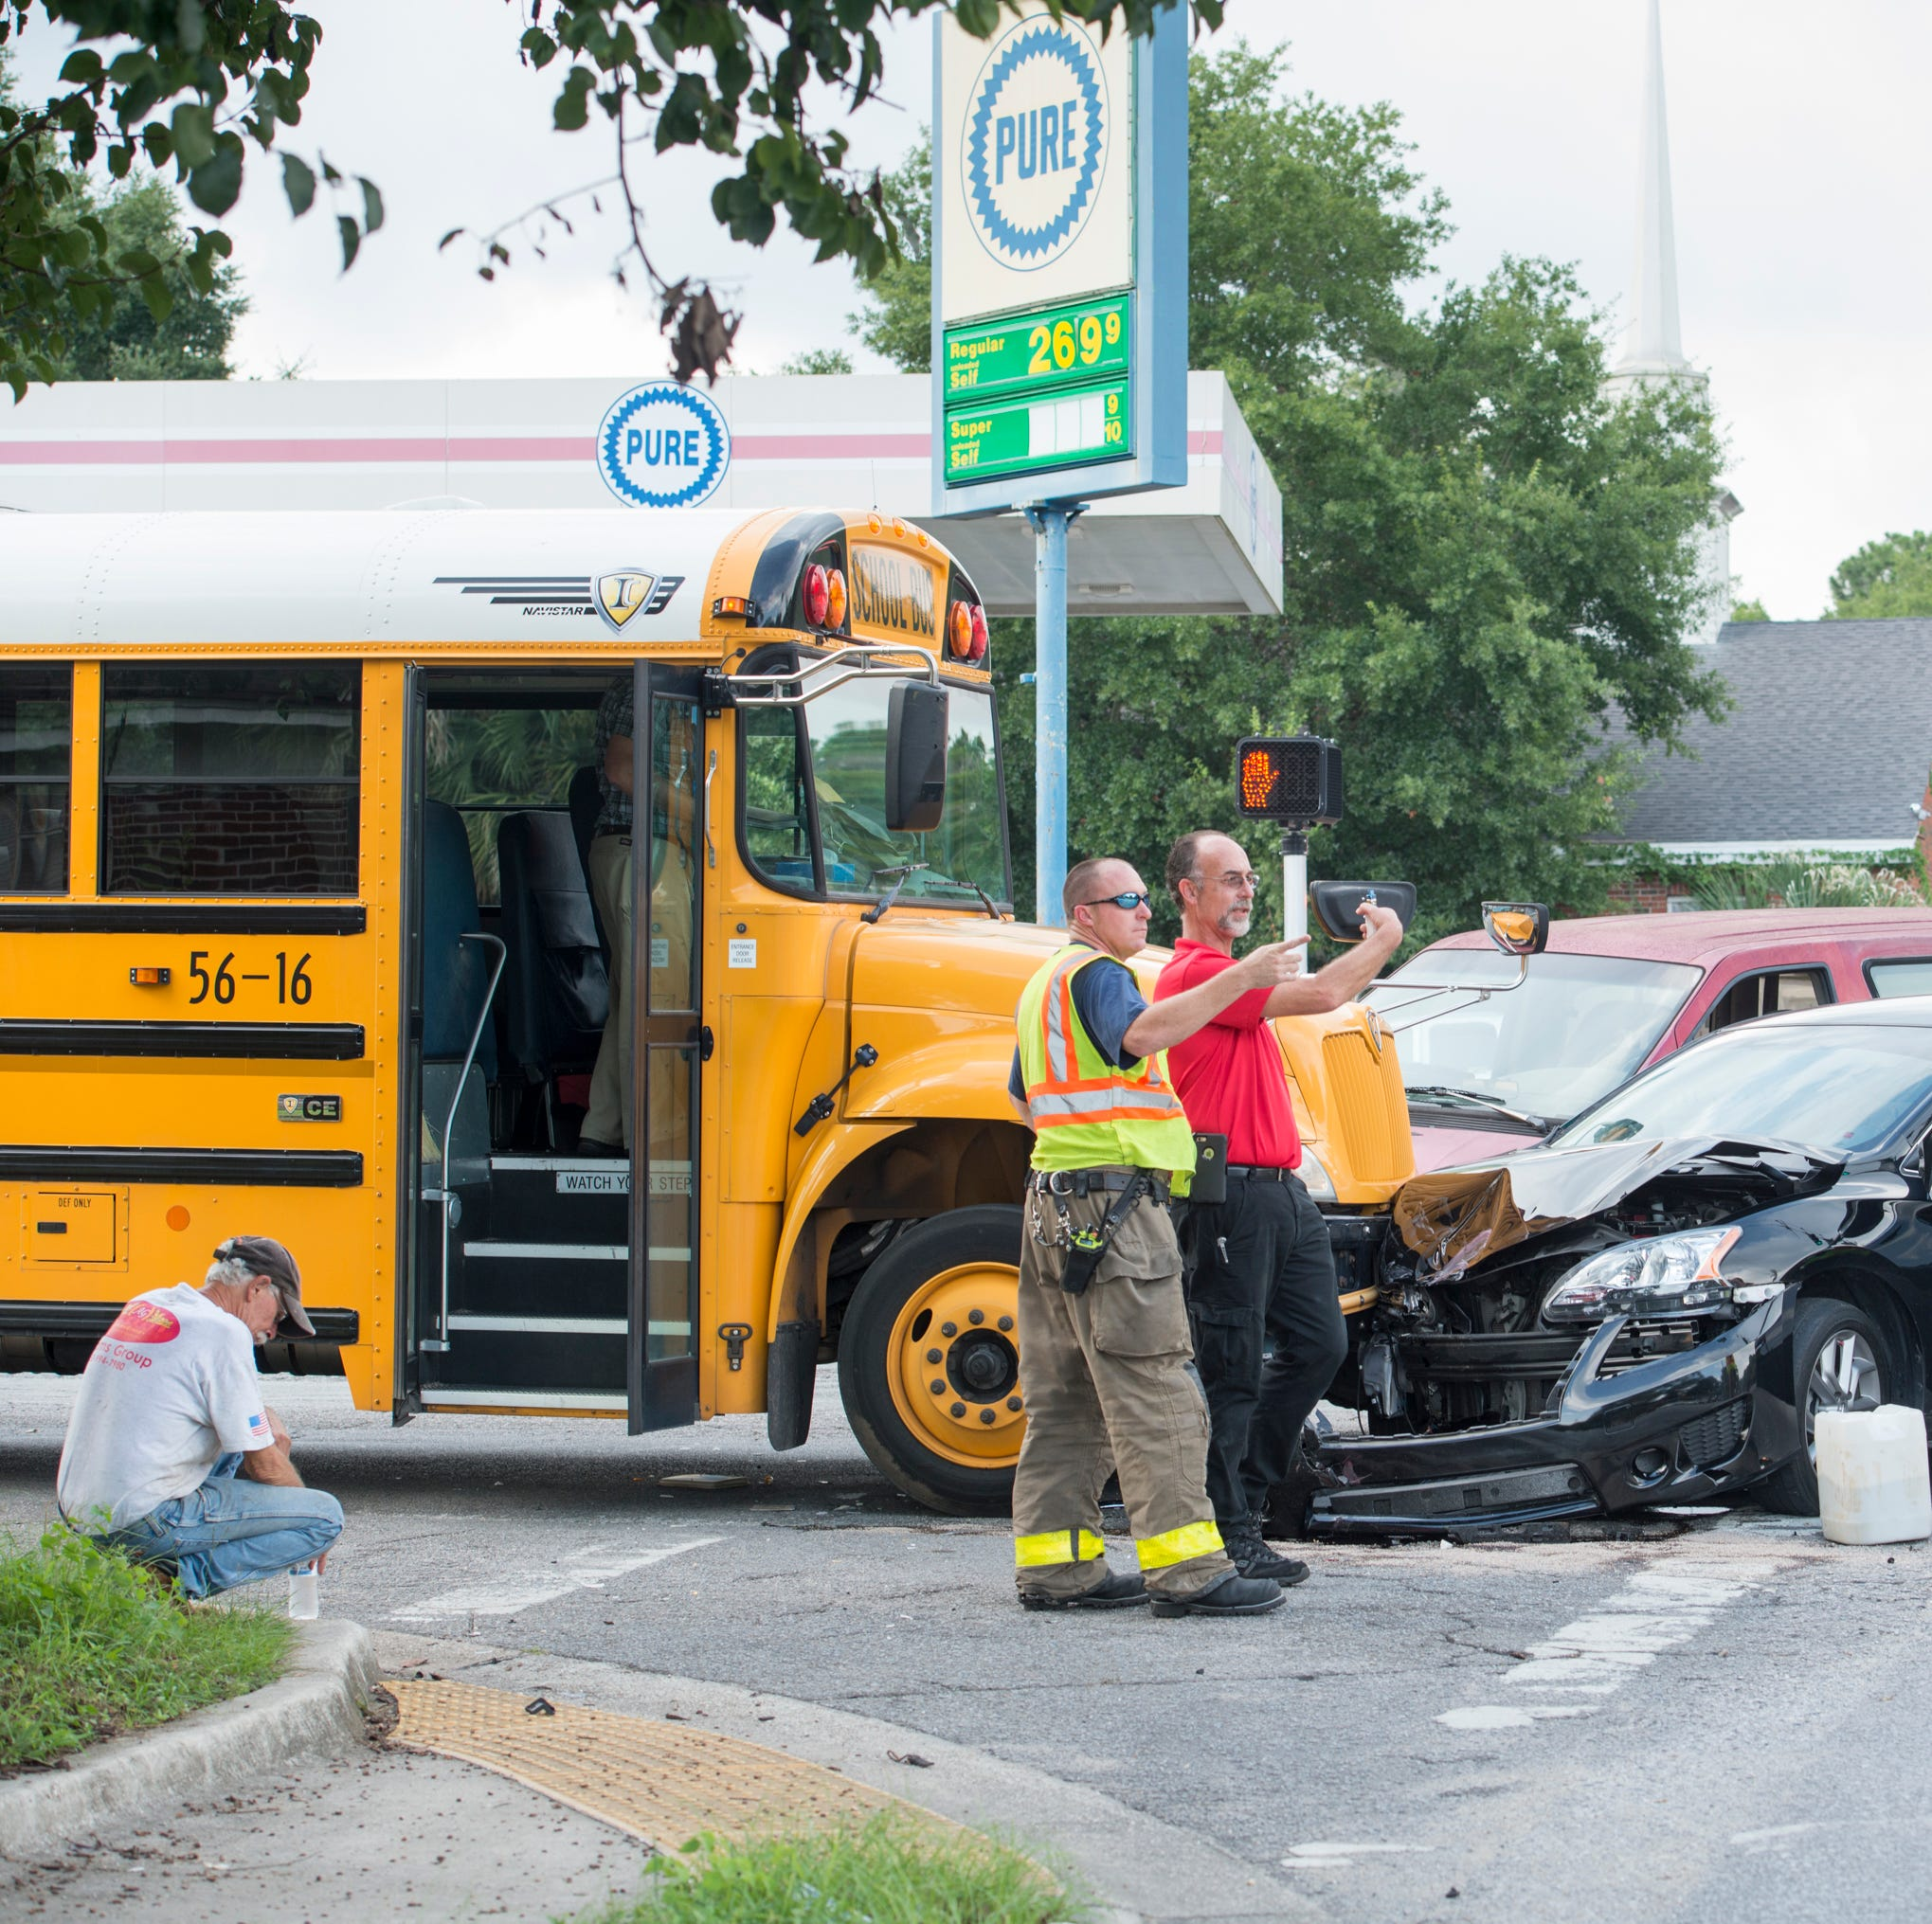 Escambia County school bus involved in crash on West Jackson Street